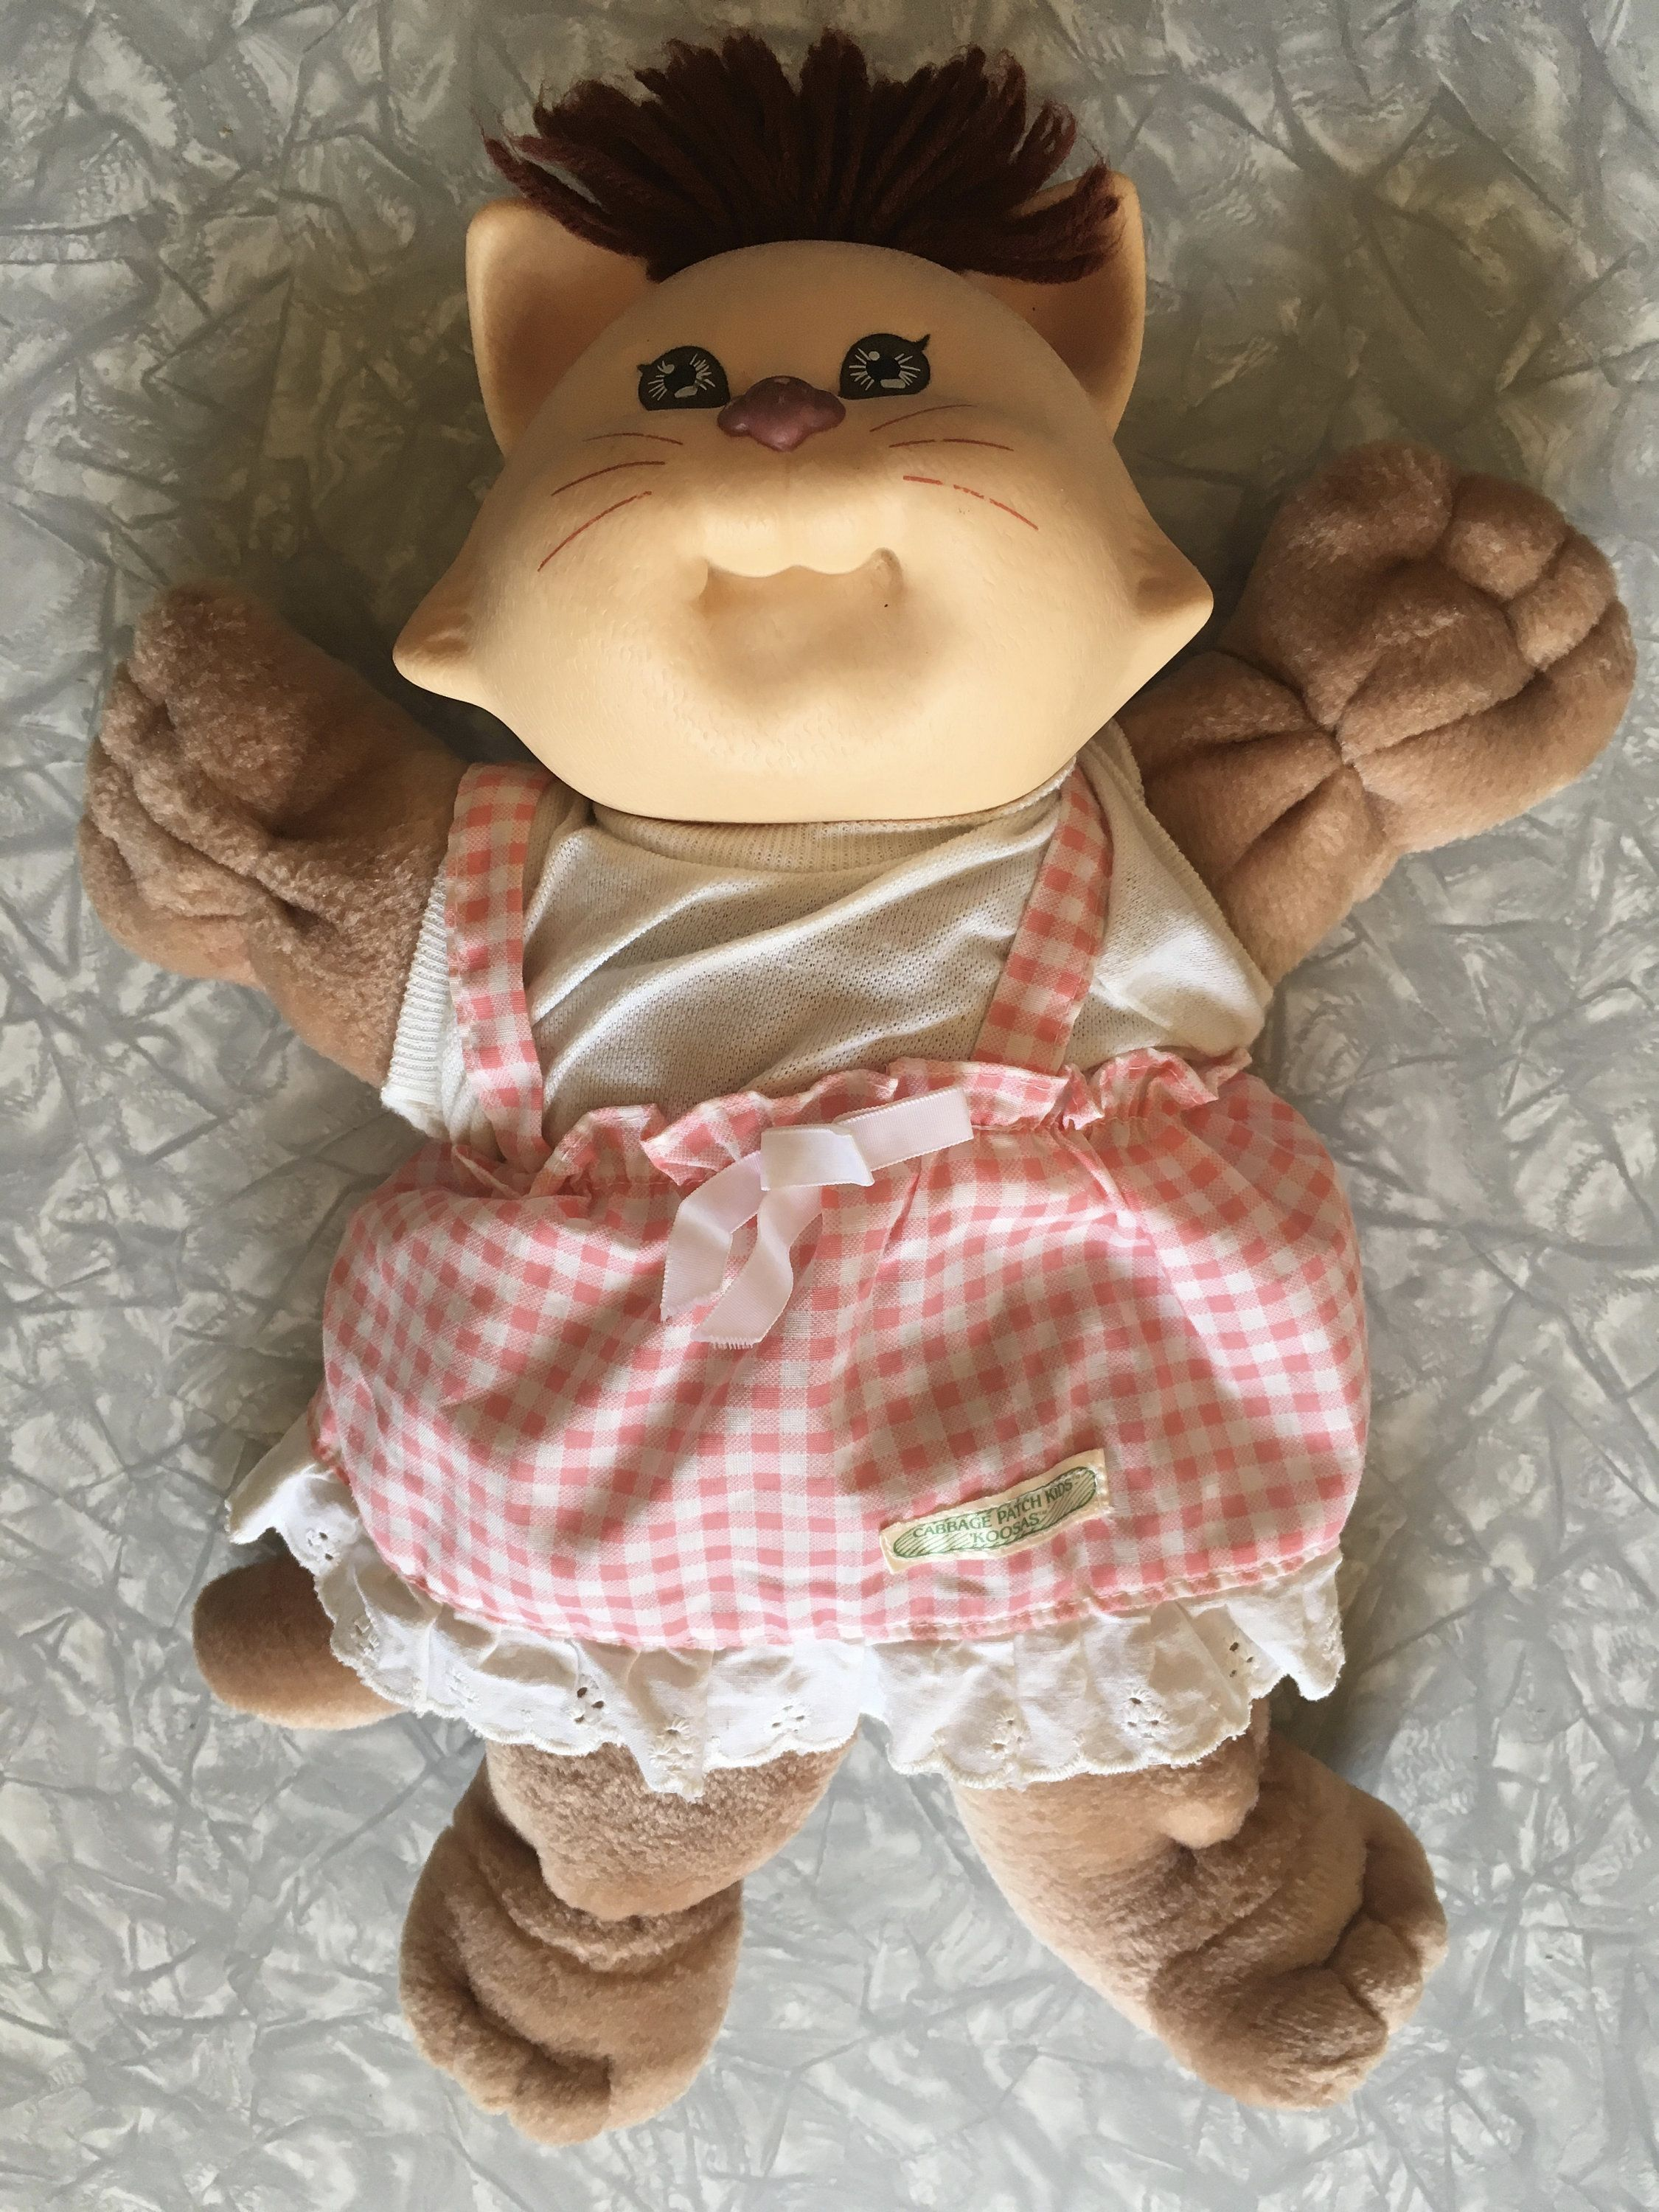 1983 Cabbage Patch Kids Koosas Cat With Outfit Coleco Etsy Cabbage Patch Kids Patch Kids Cabbage Patch Babies